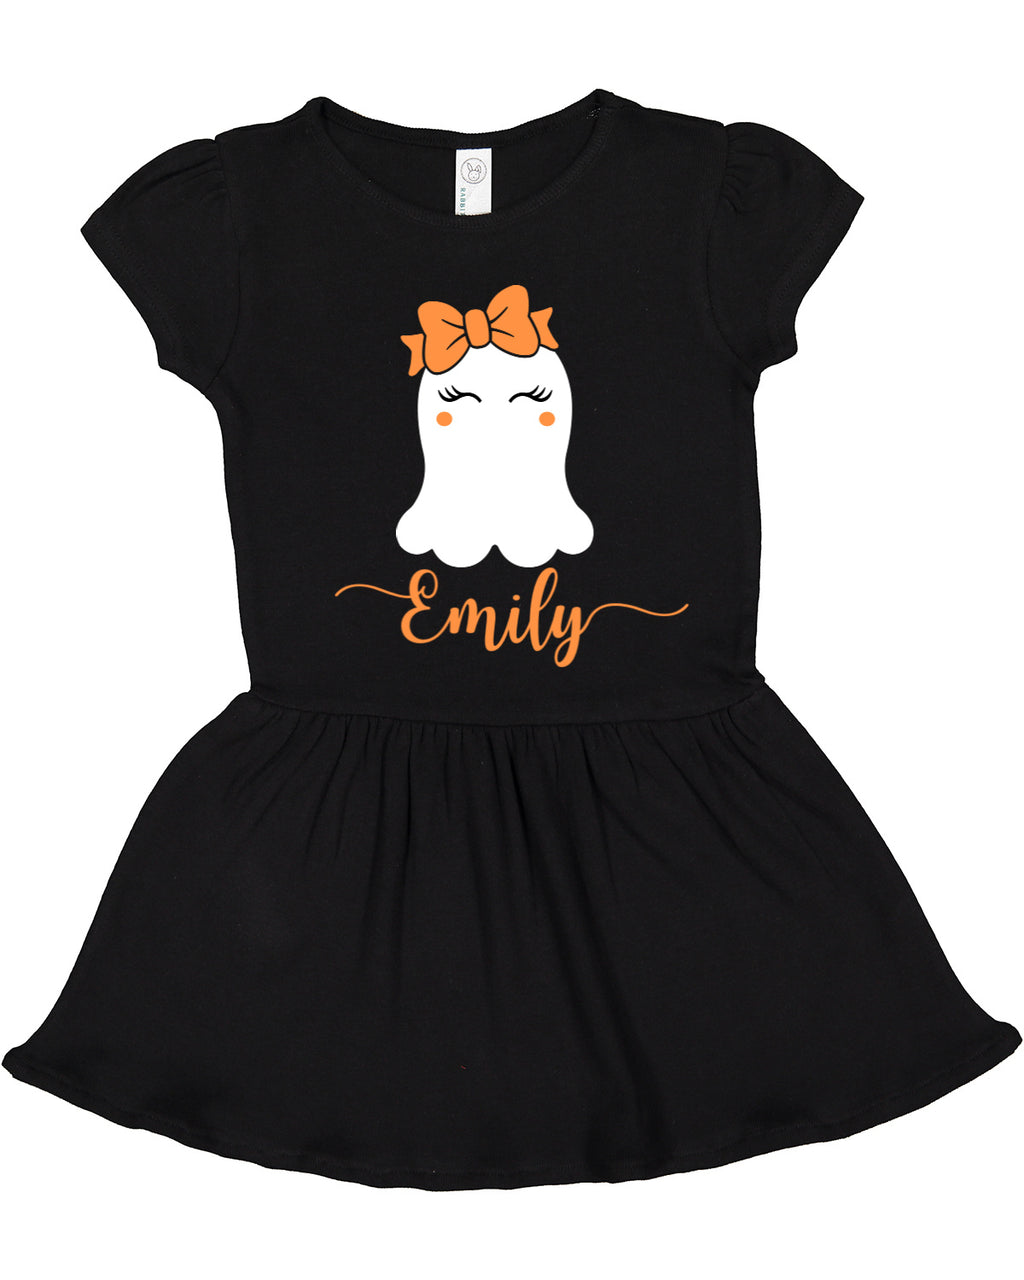 Girls Personalized Glow-In-The-Dark Cute Ghost Dress